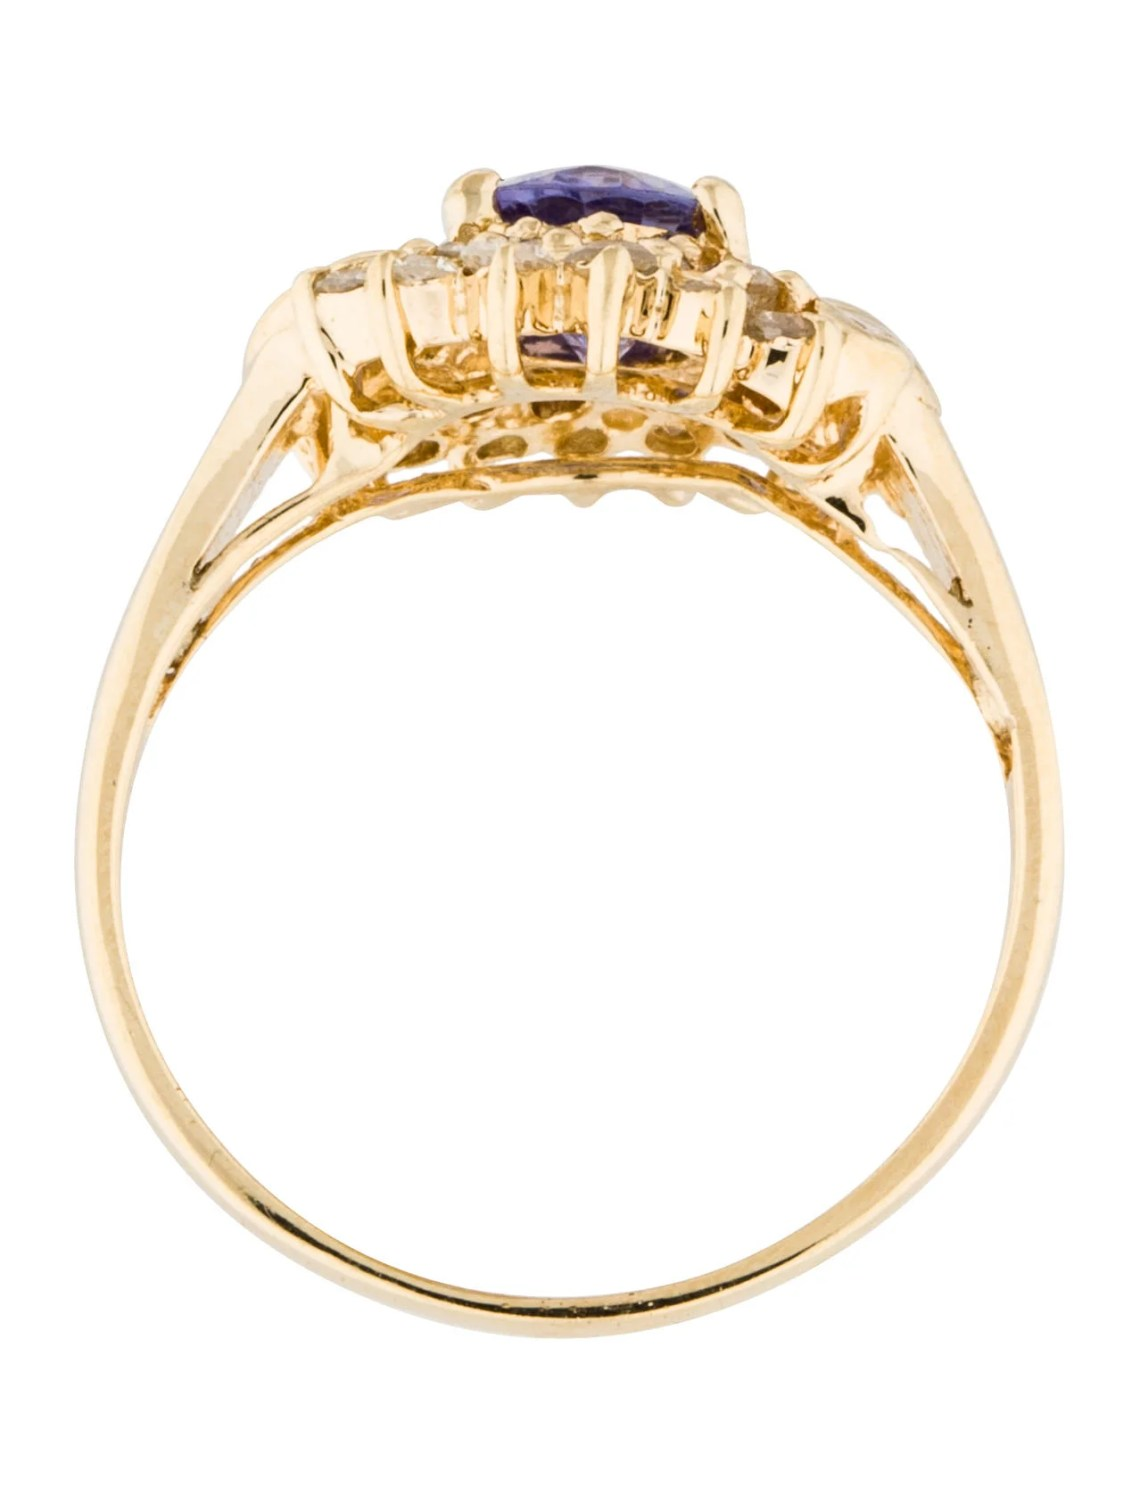 Image Result For Diamondrings With Baguettes